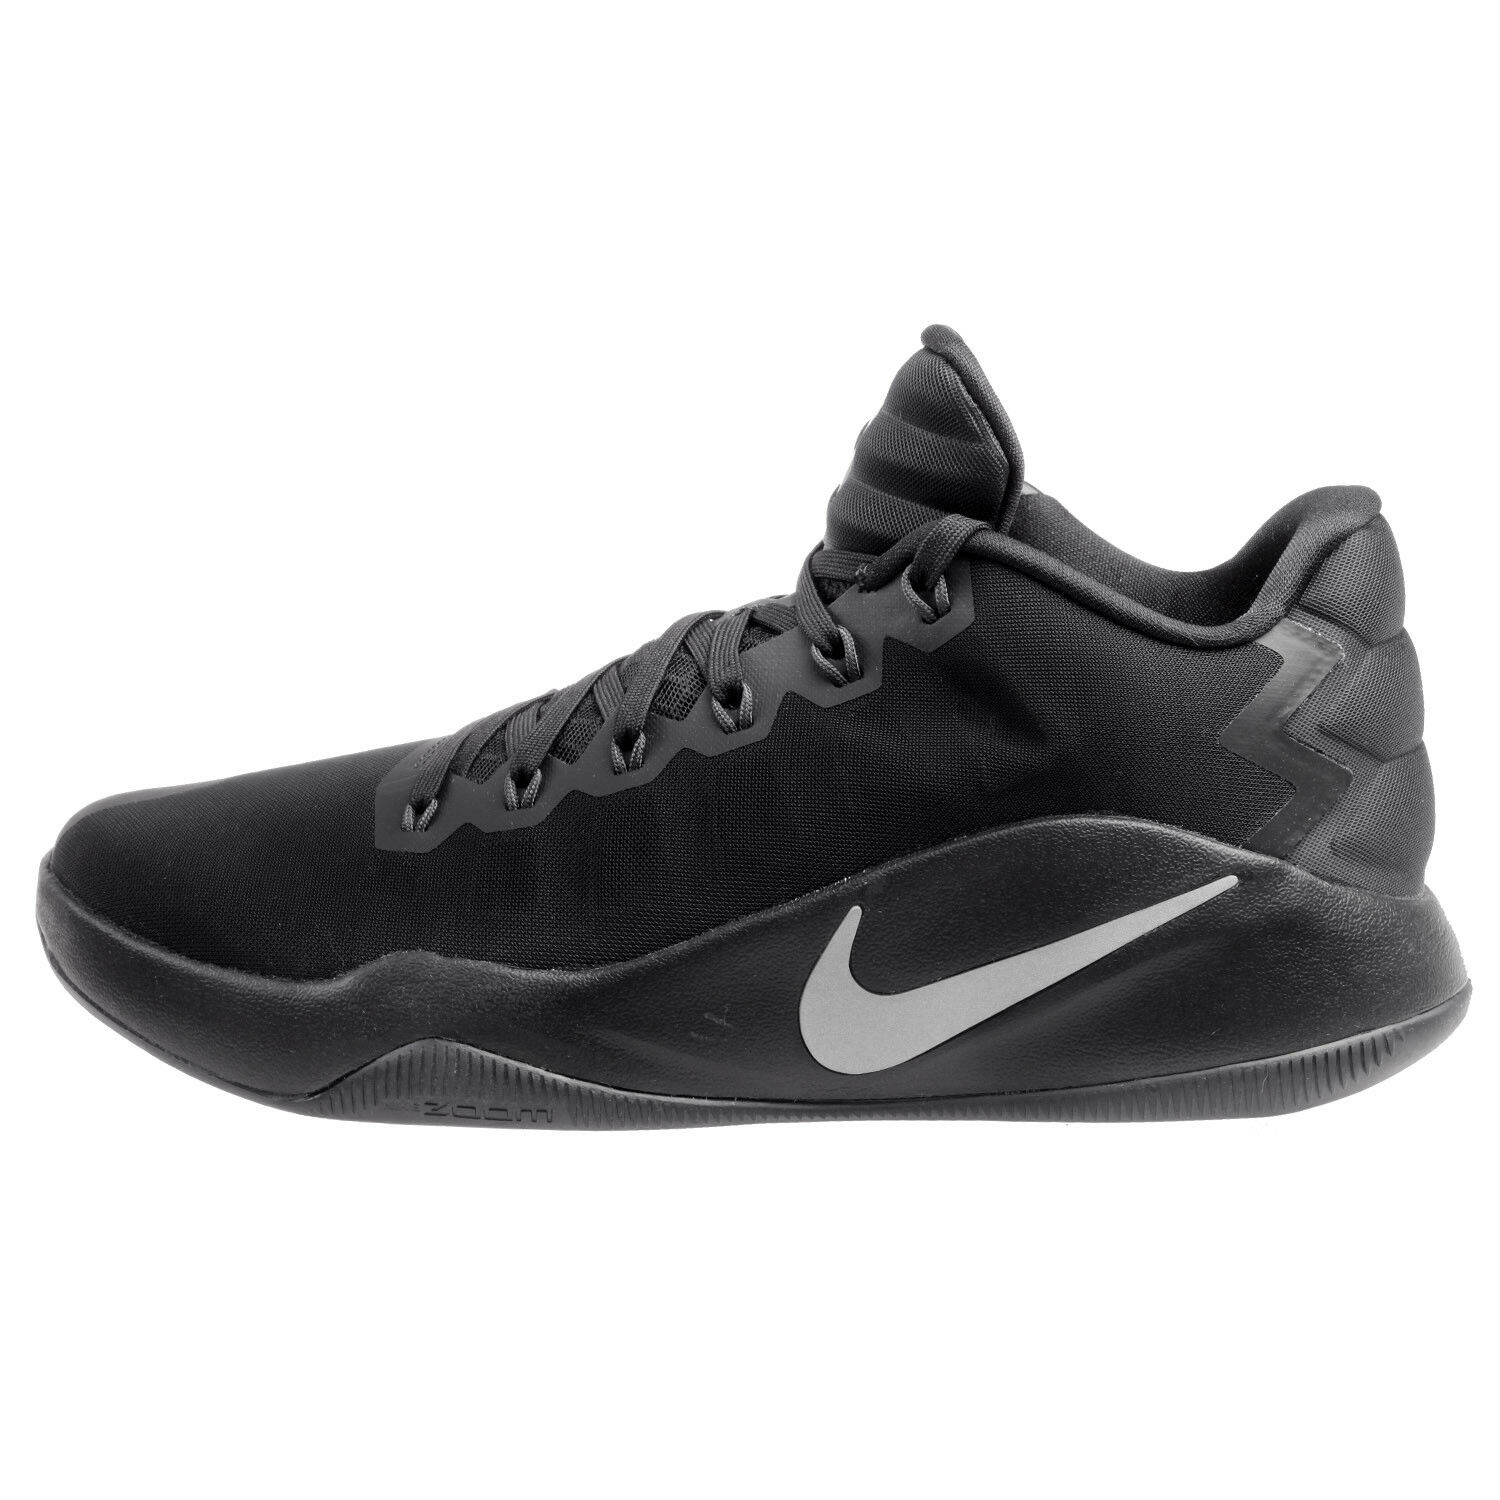 Nike Hyperdunk 2018 Low Mens 844363-002 Black Silver Basketball Shoes Comfortable